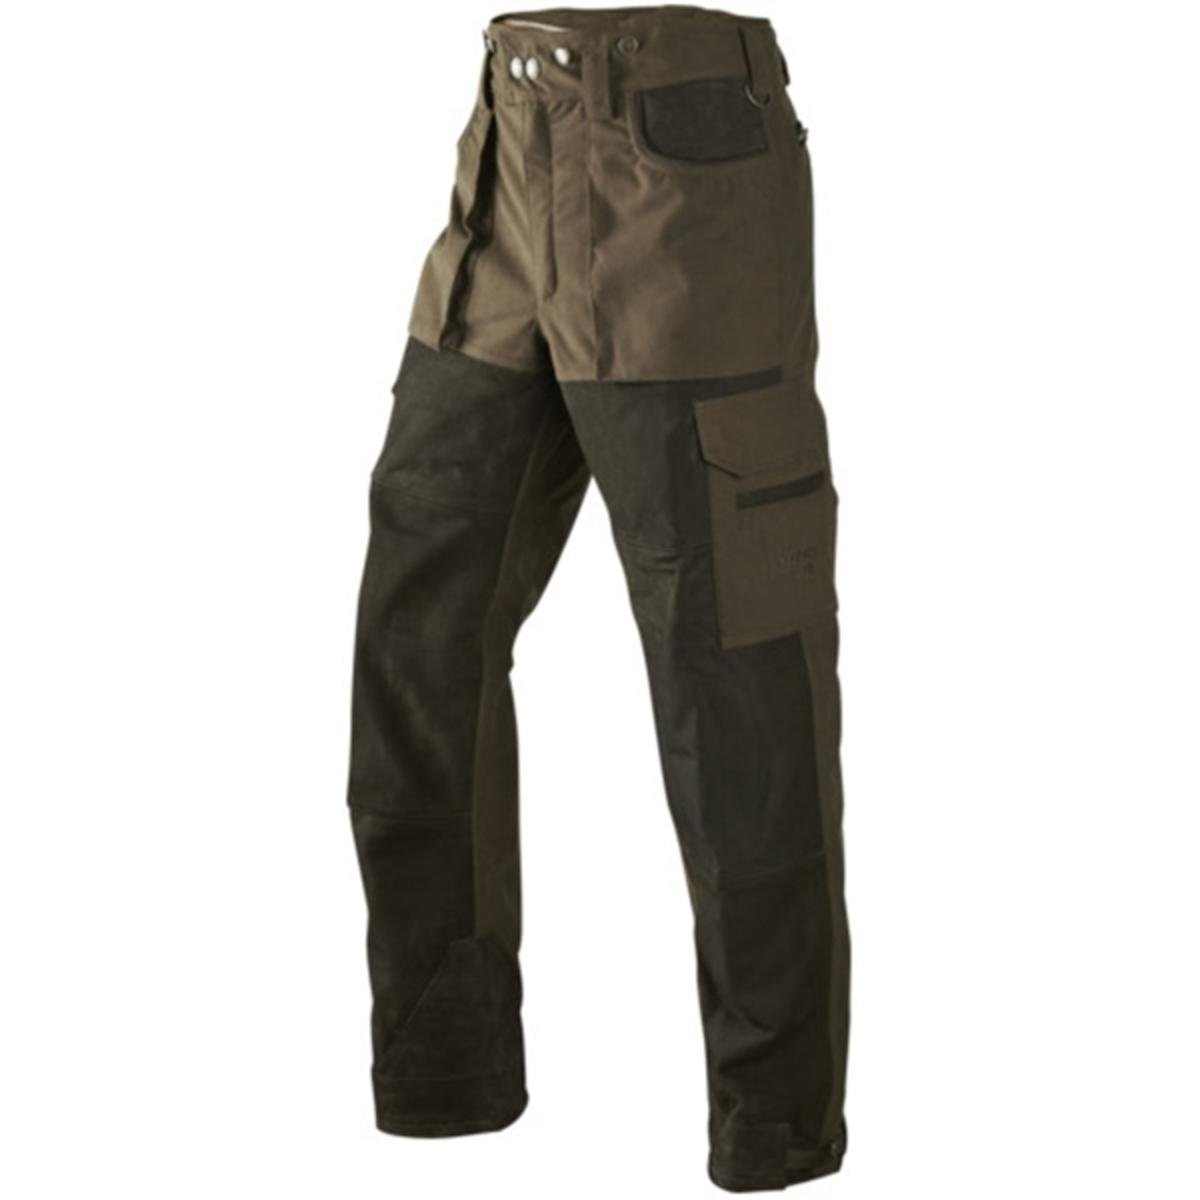 Amazon.com : Harkila Extreme X Trousers Hunting Green C60 ...